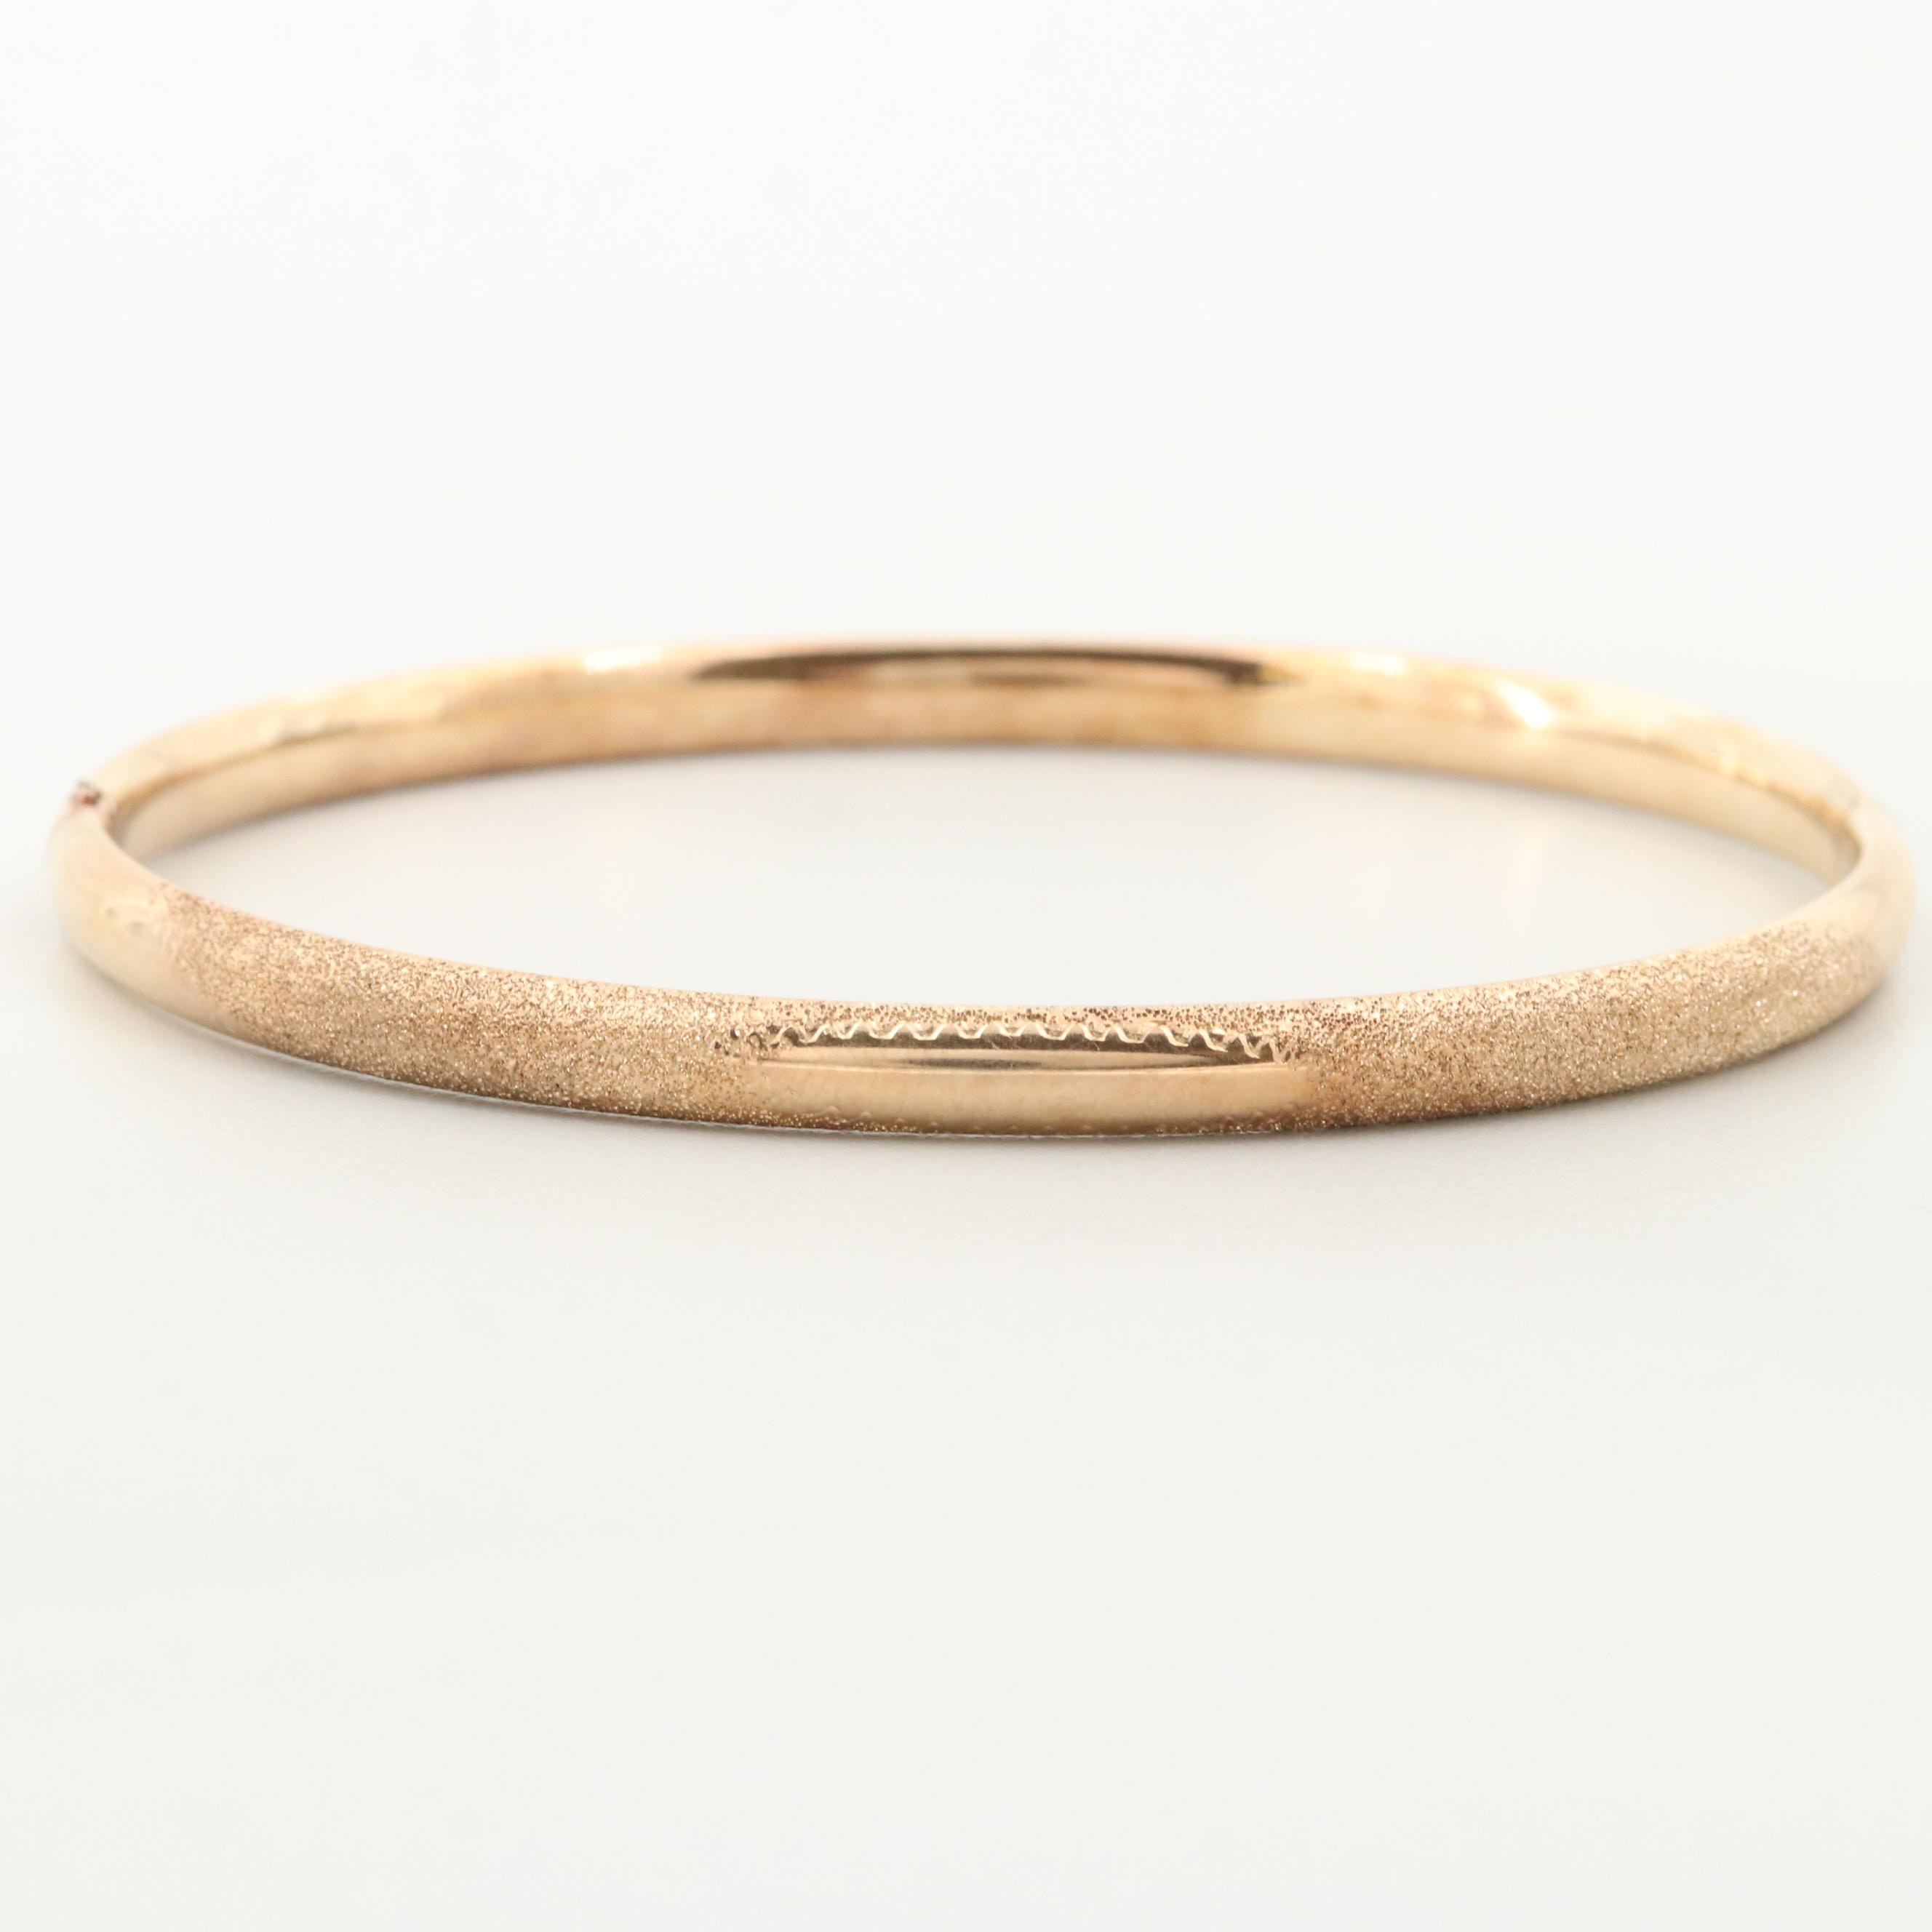 10K Yellow Gold Textured Bangle Bracelet